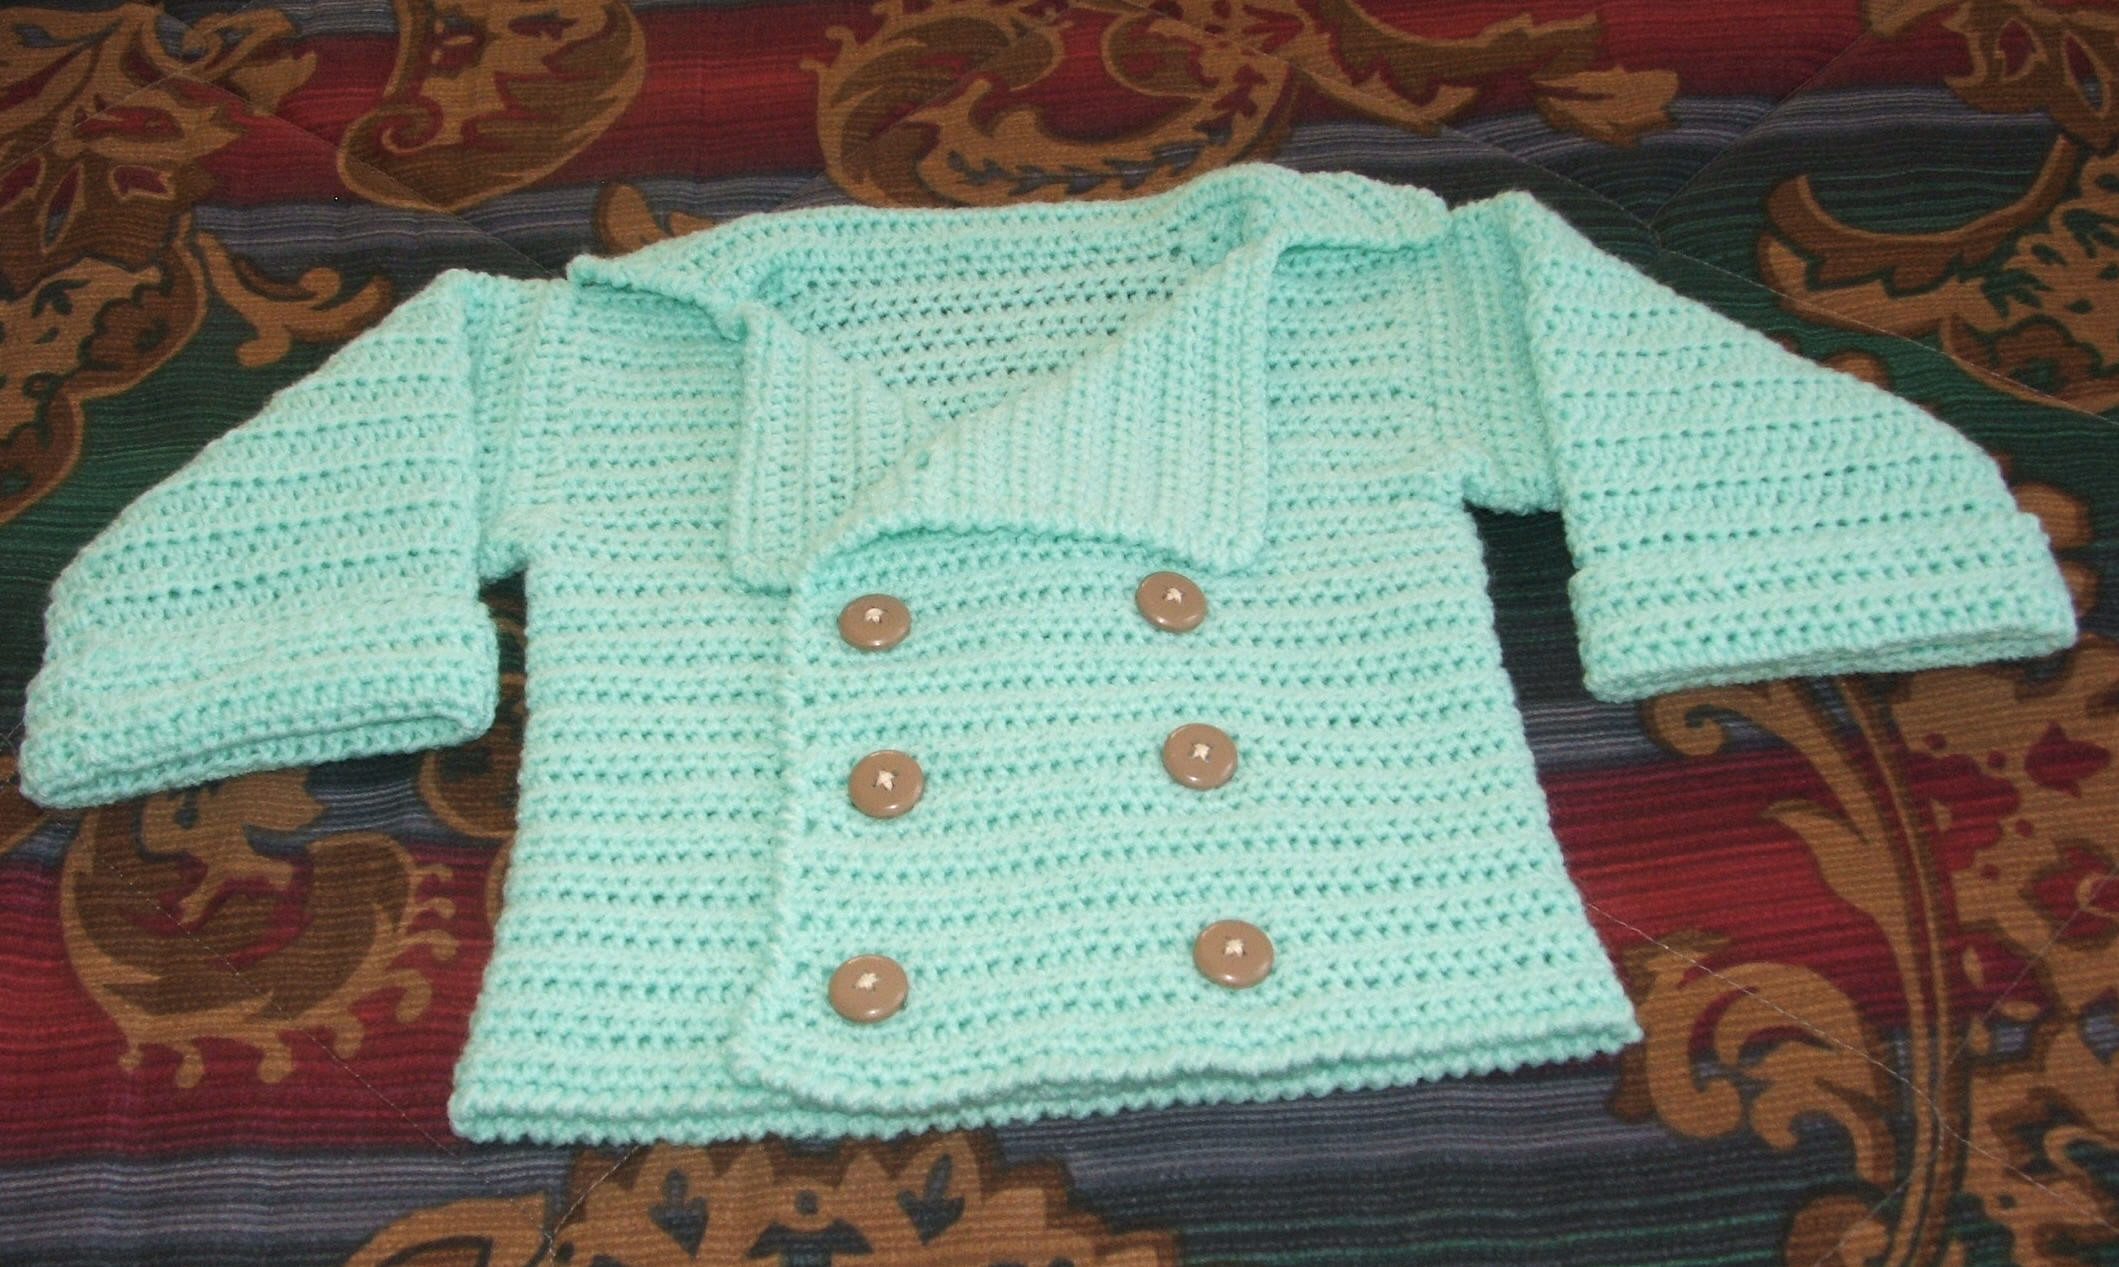 Elegant Infant's Double Breasted Sweater Free Crochet Pattern Free Crochet Baby Sweater Patterns Of Wonderful 40 Images Free Crochet Baby Sweater Patterns